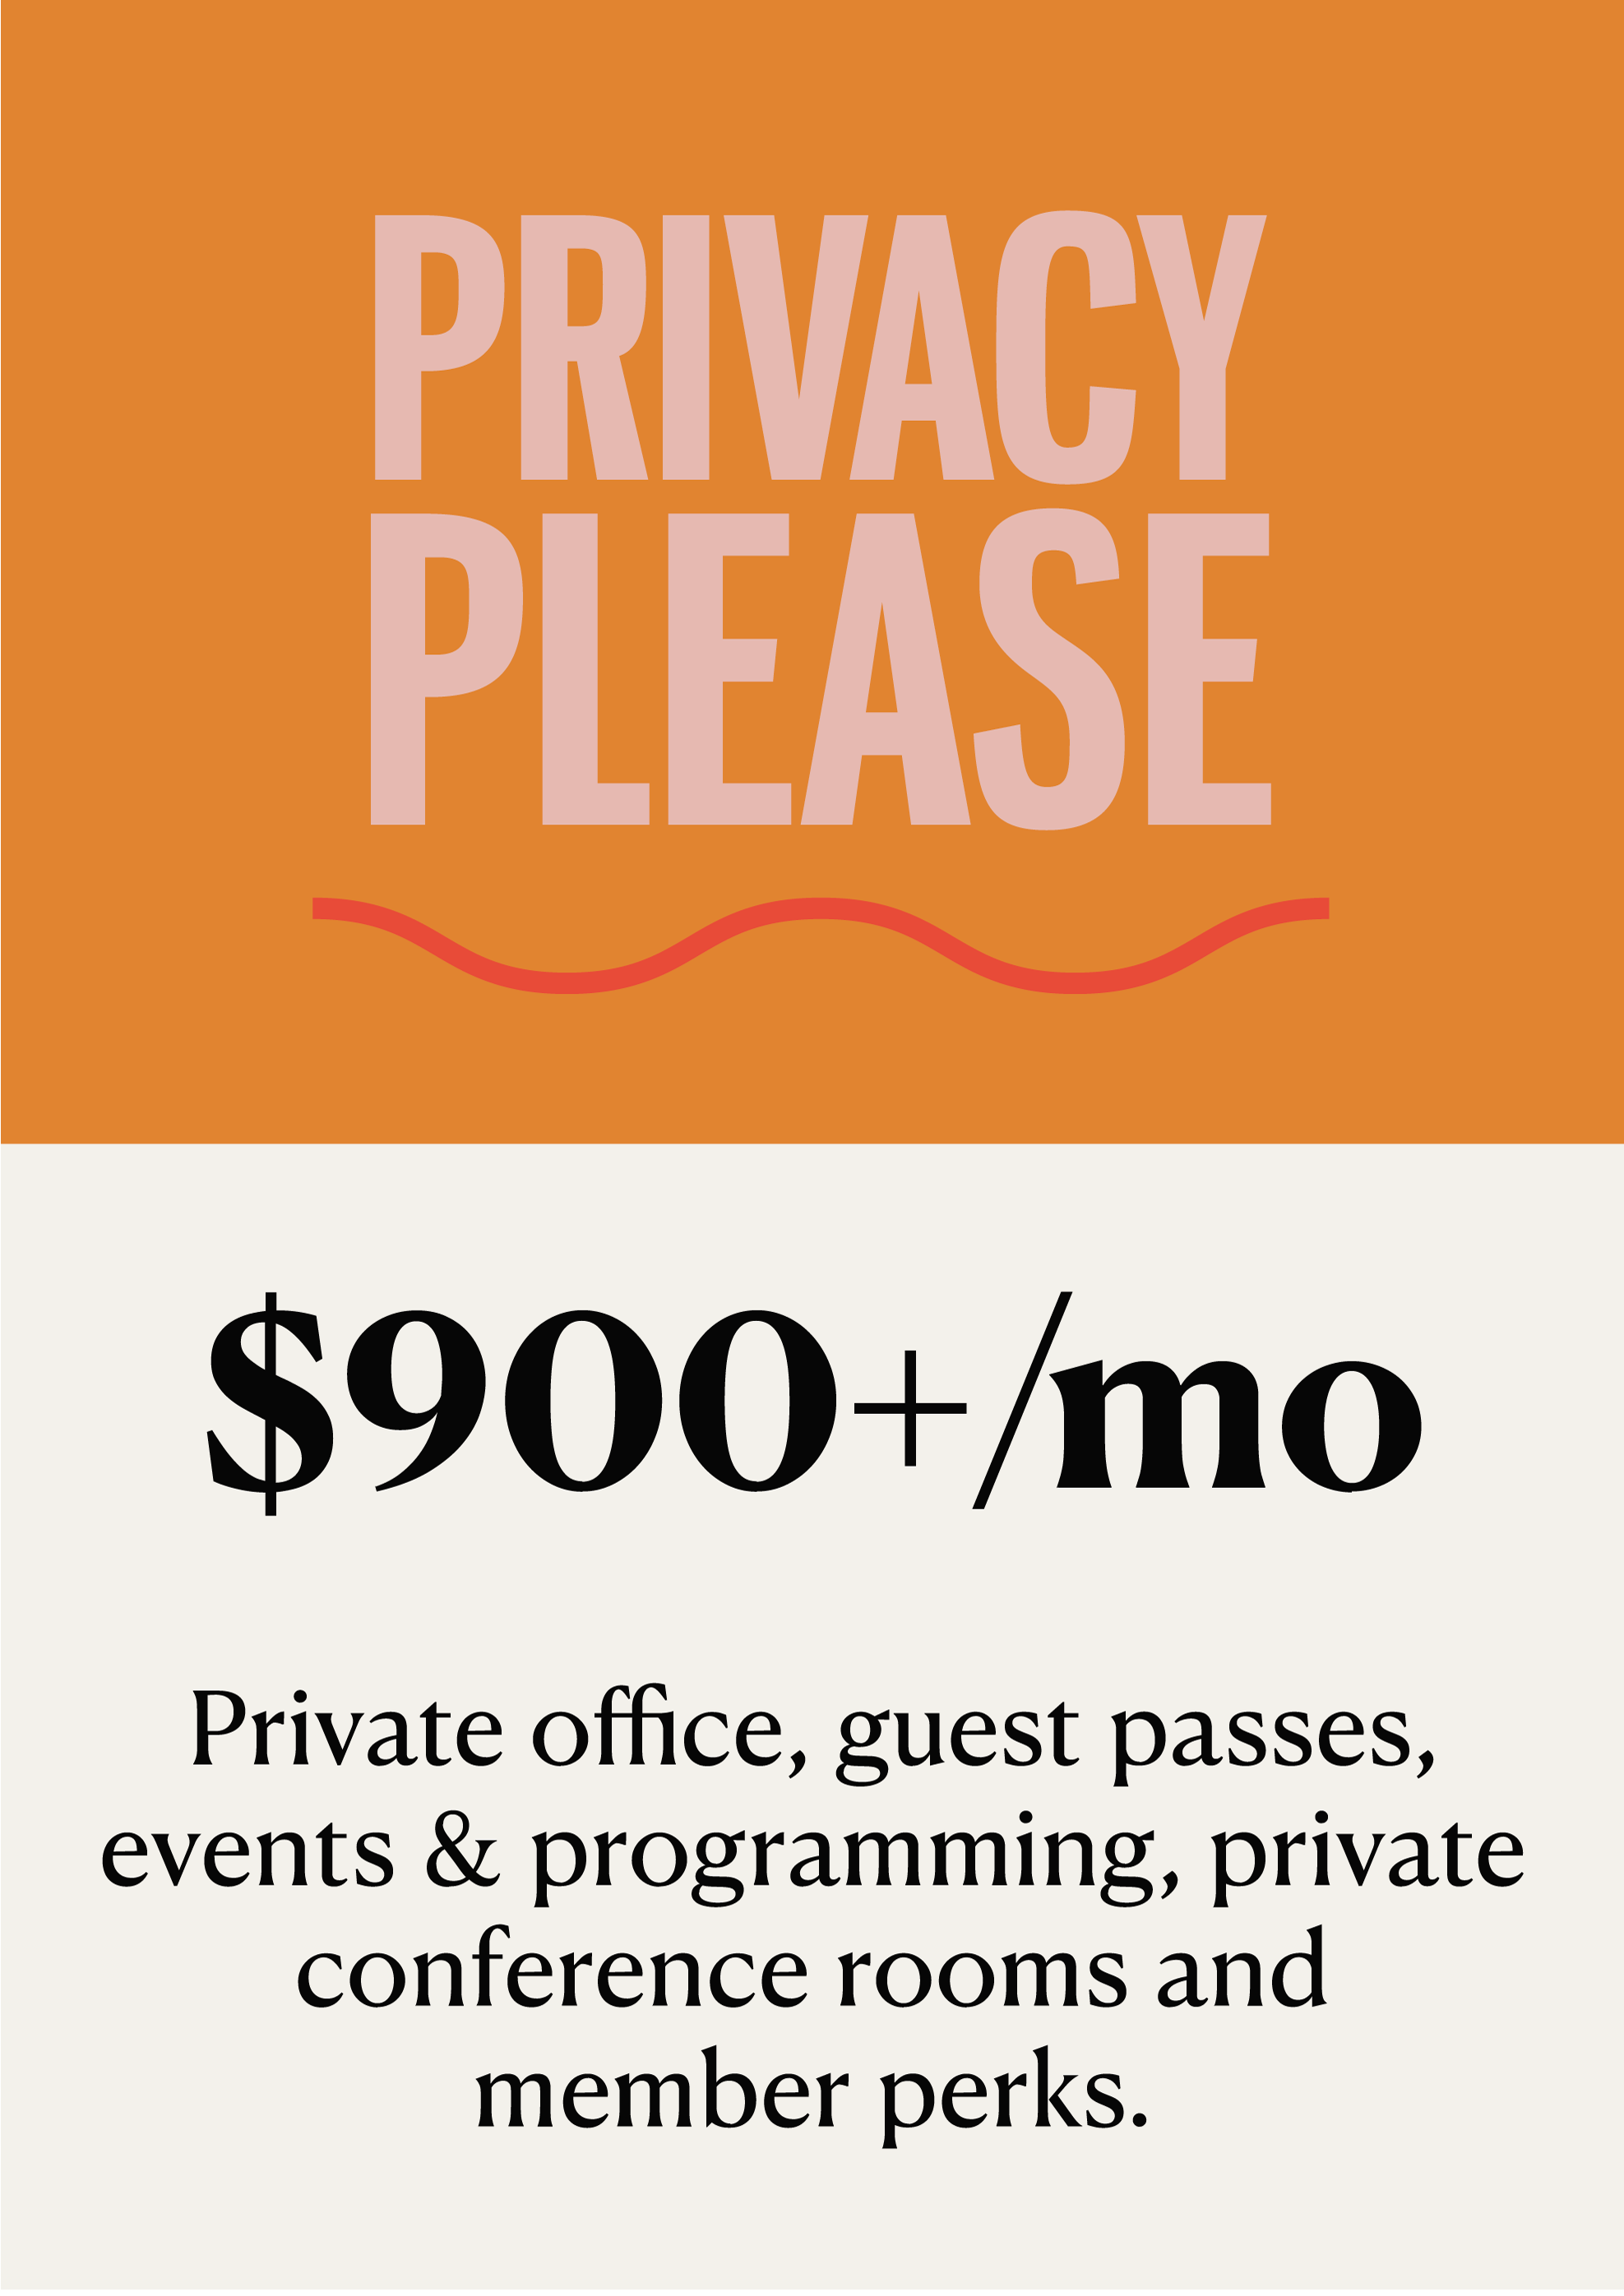 PrivacyPlease_#4.png